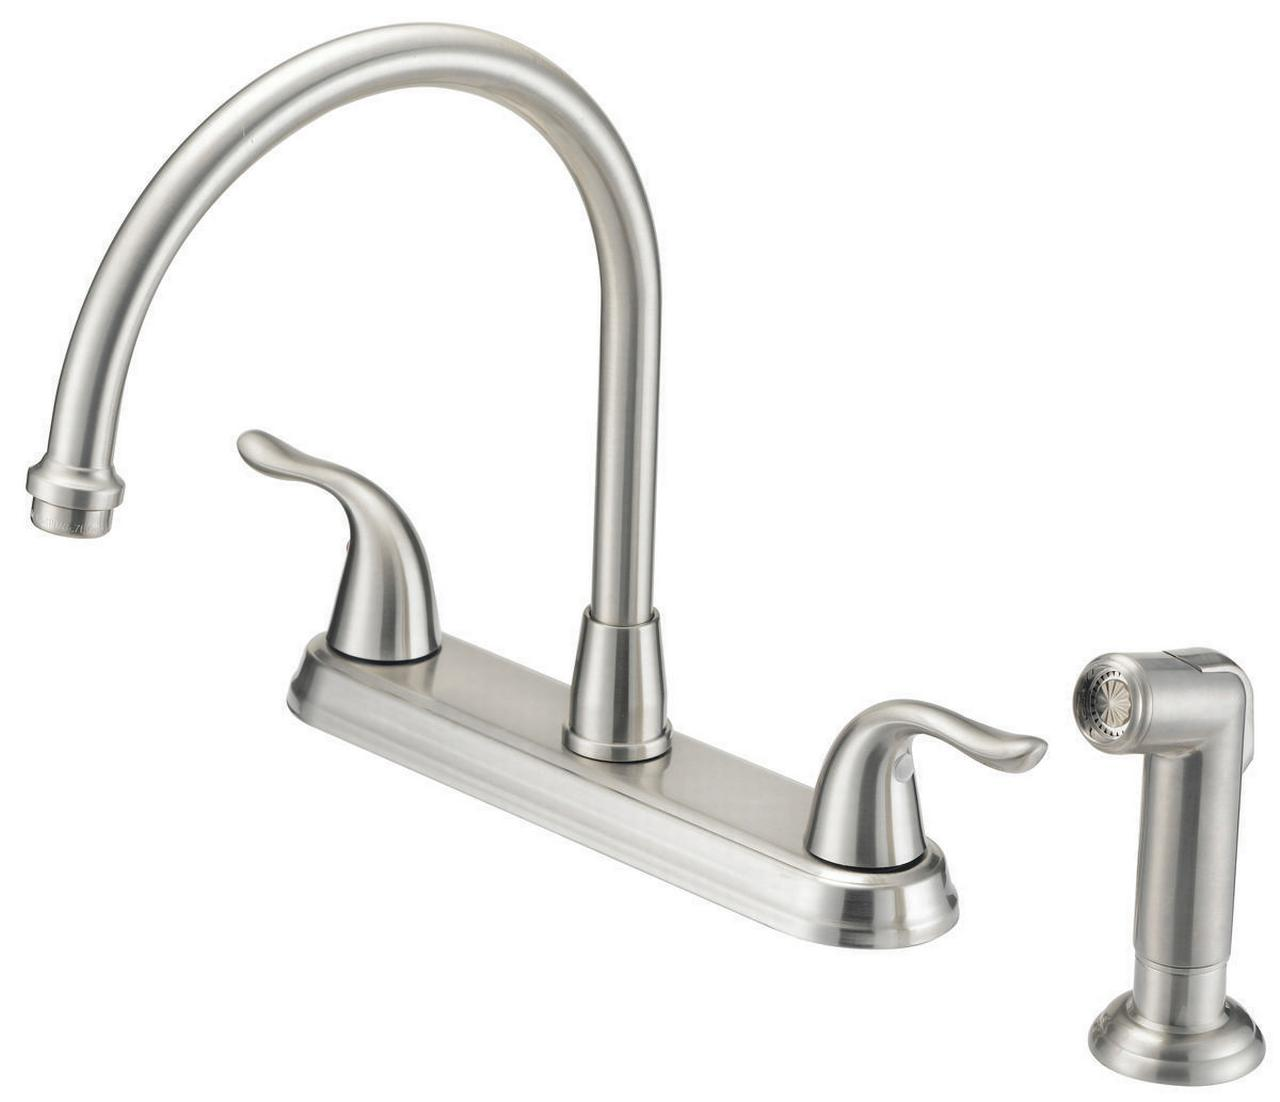 KITCHEN FAUCET 2-HDL SPRAY BN